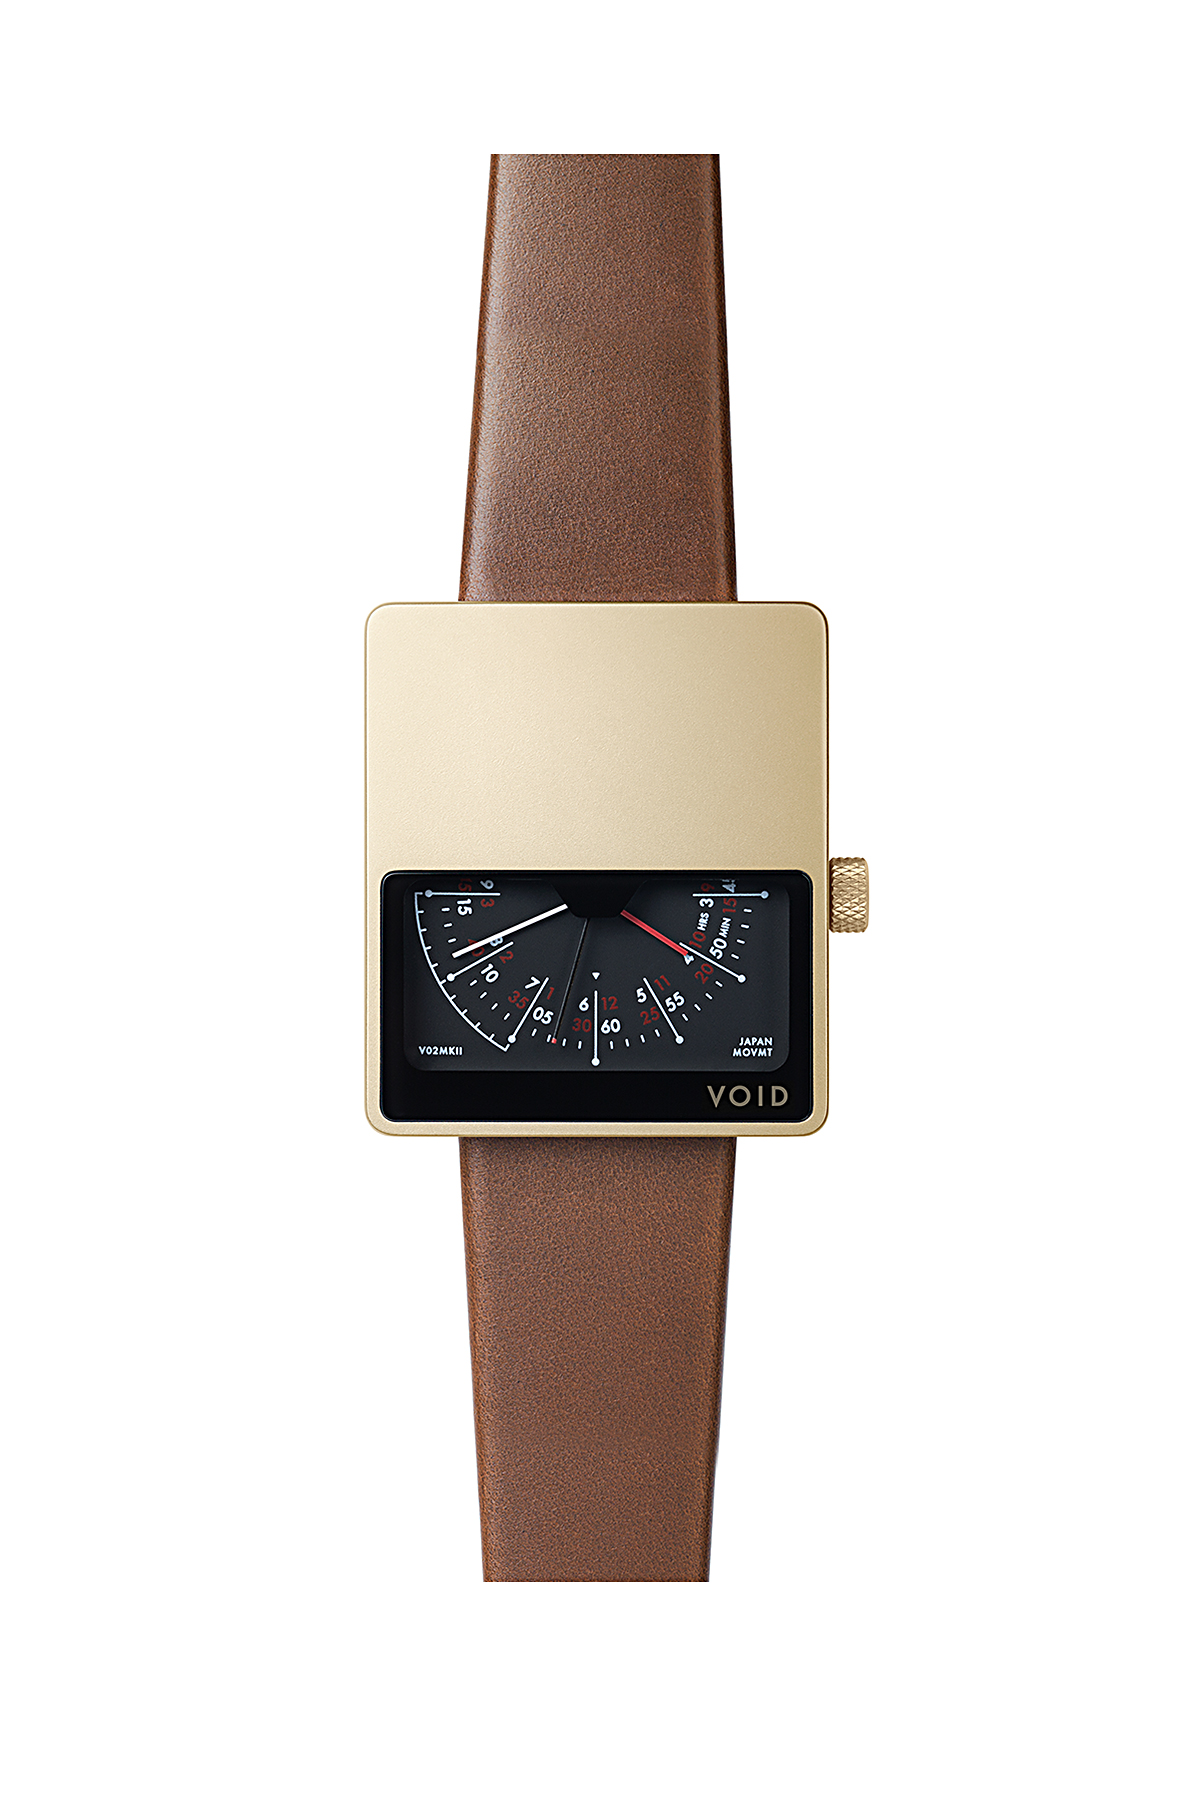 VOID WATCHES : V02 MK2 (Gold / L.Brown)